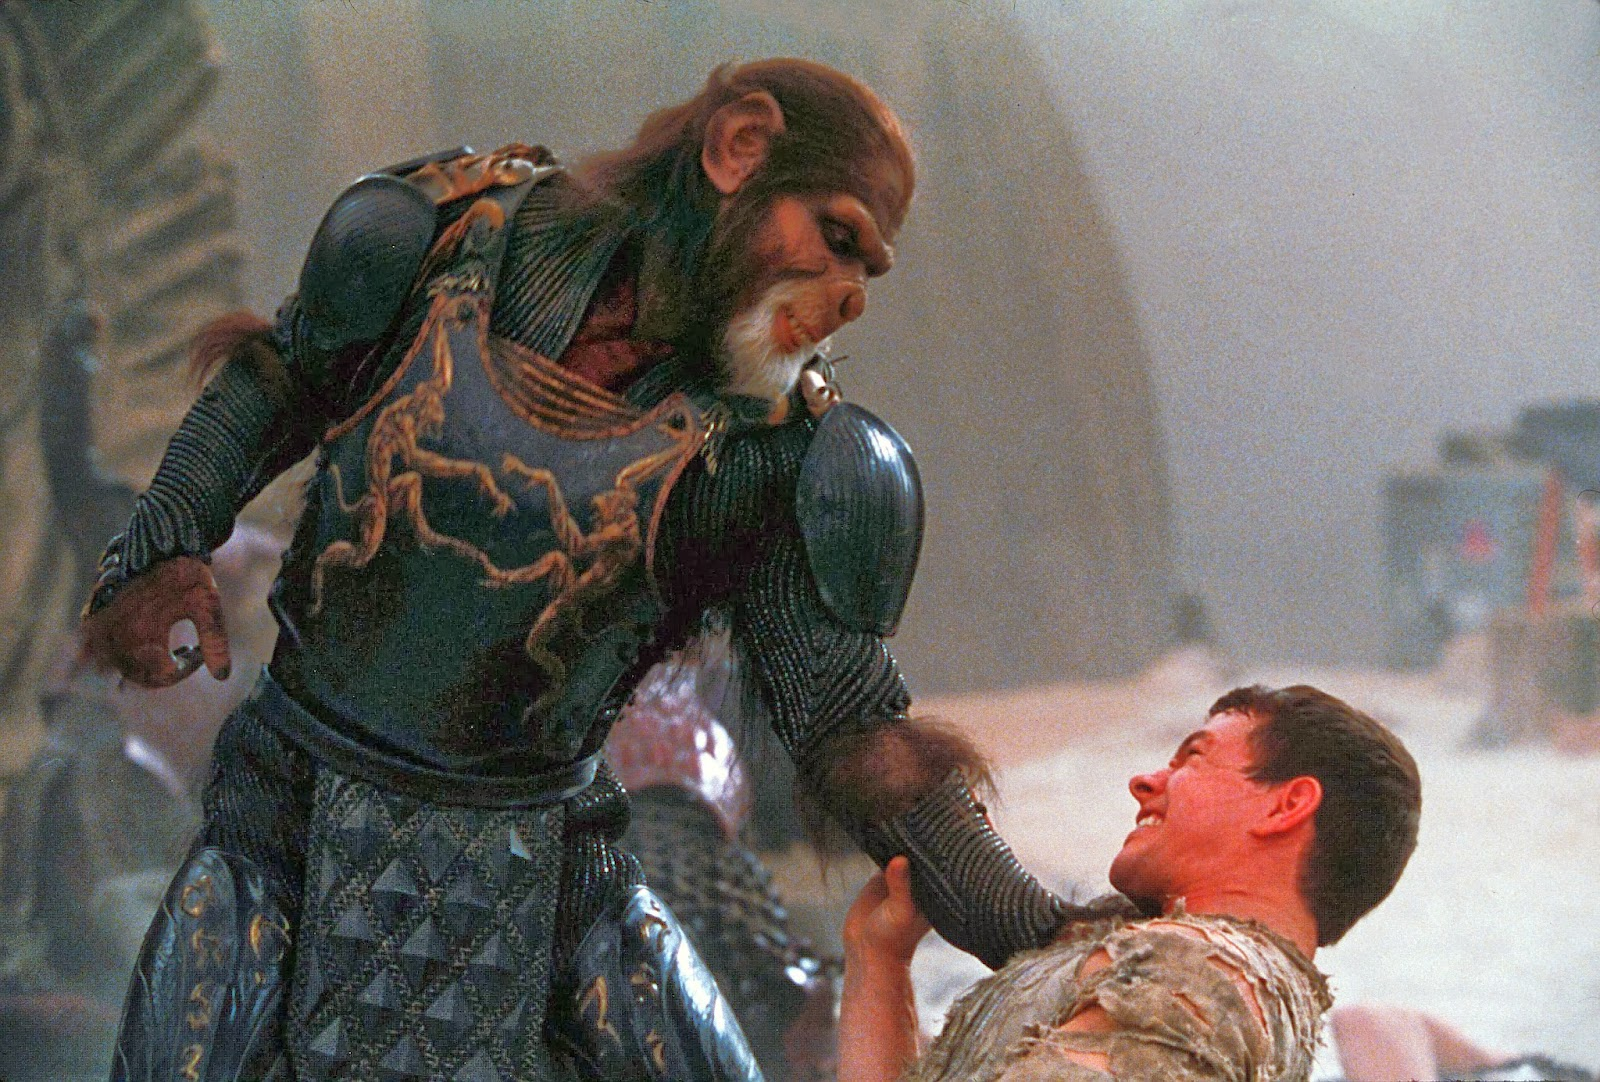 7. Planet of the Apes (2001)